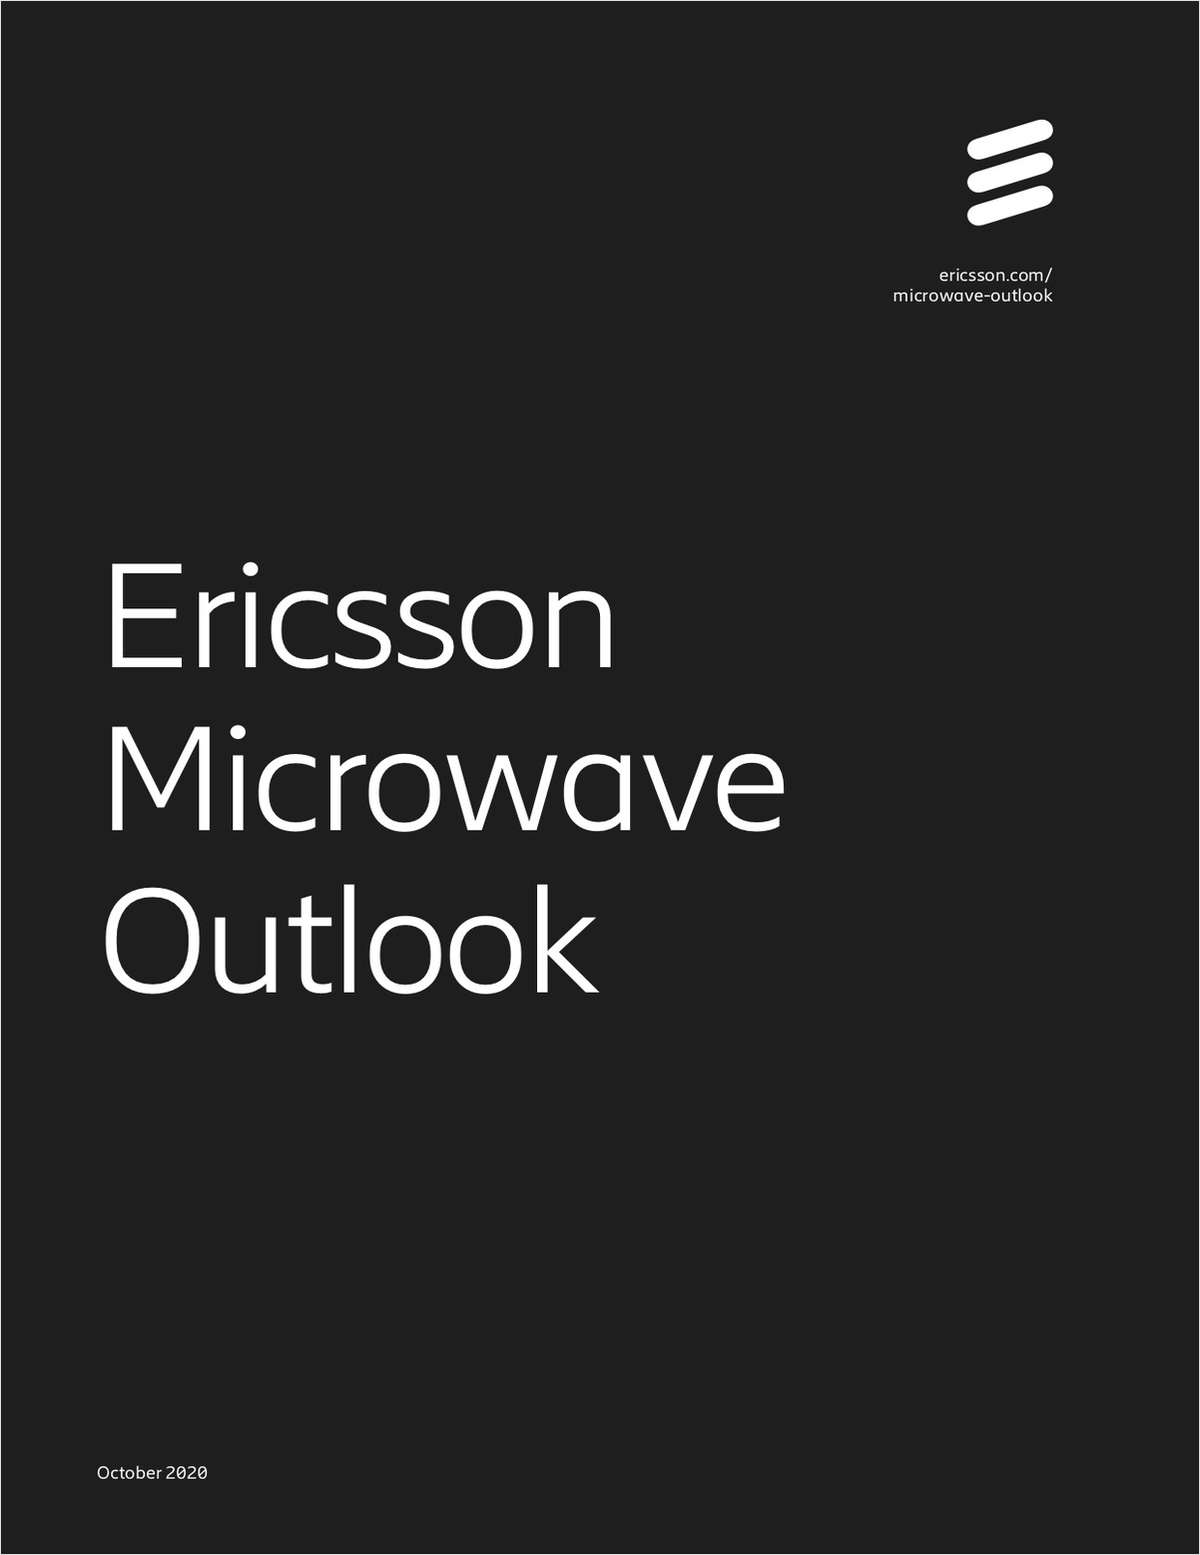 Enhancing 5G with microwave - 2020 Ericsson Microwave Outlook report